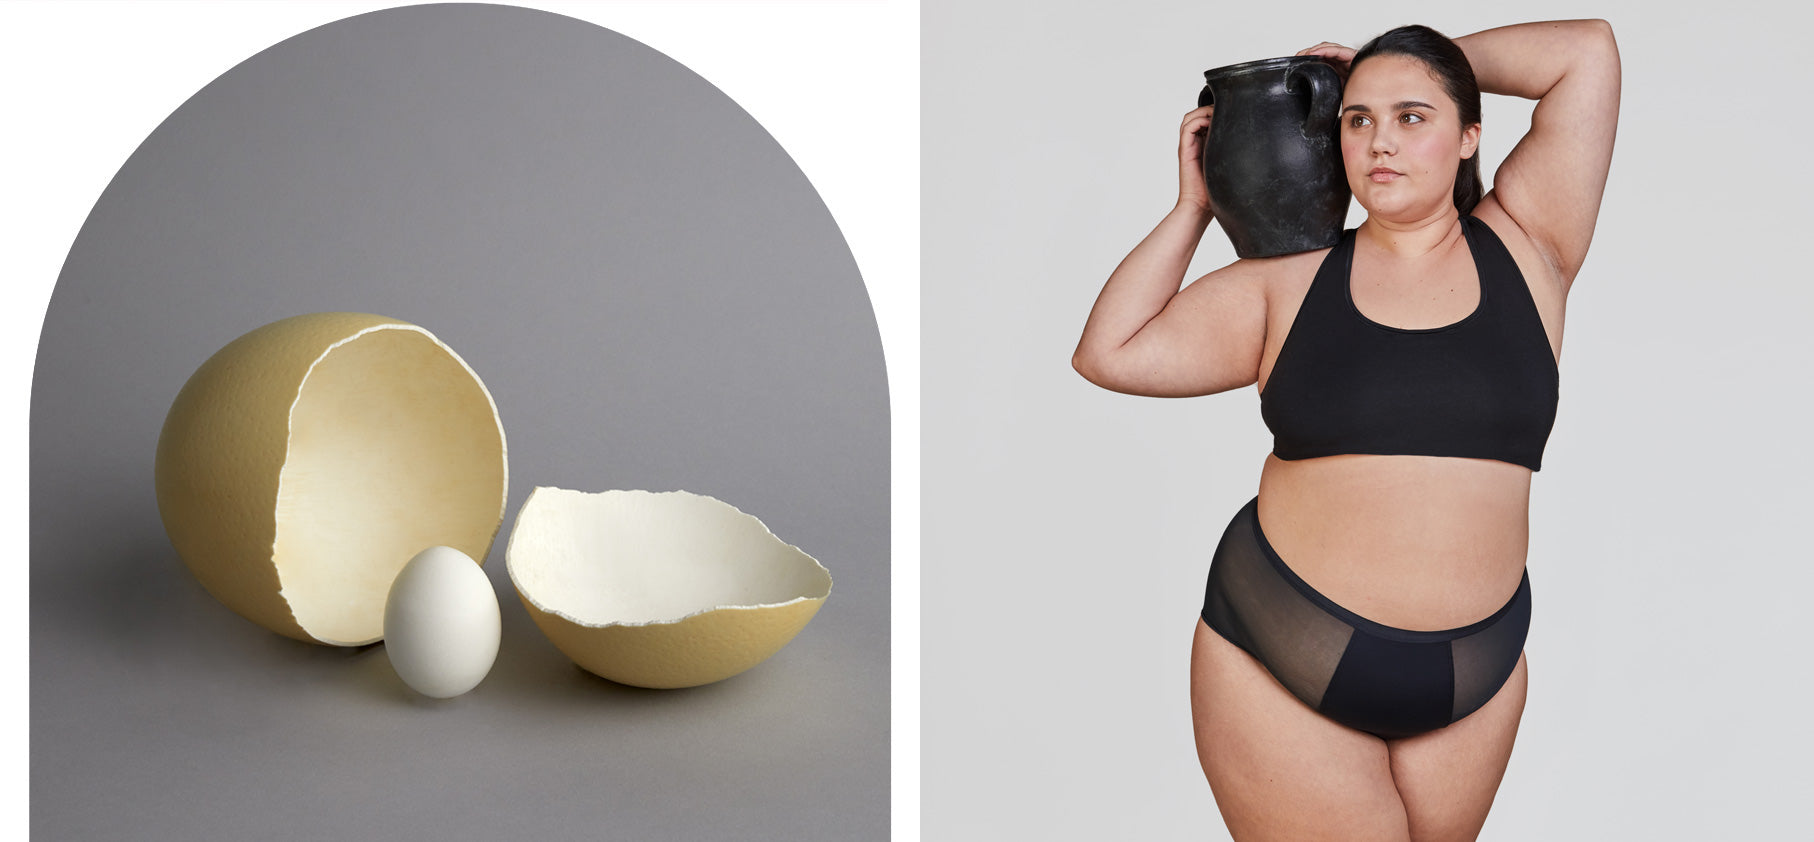 Two side by side images, first image has a broken ostrich egg enclosing a smaller unbroken egg, the second a woman holding a jug modeling Thinx Super Hi-Waist in Black